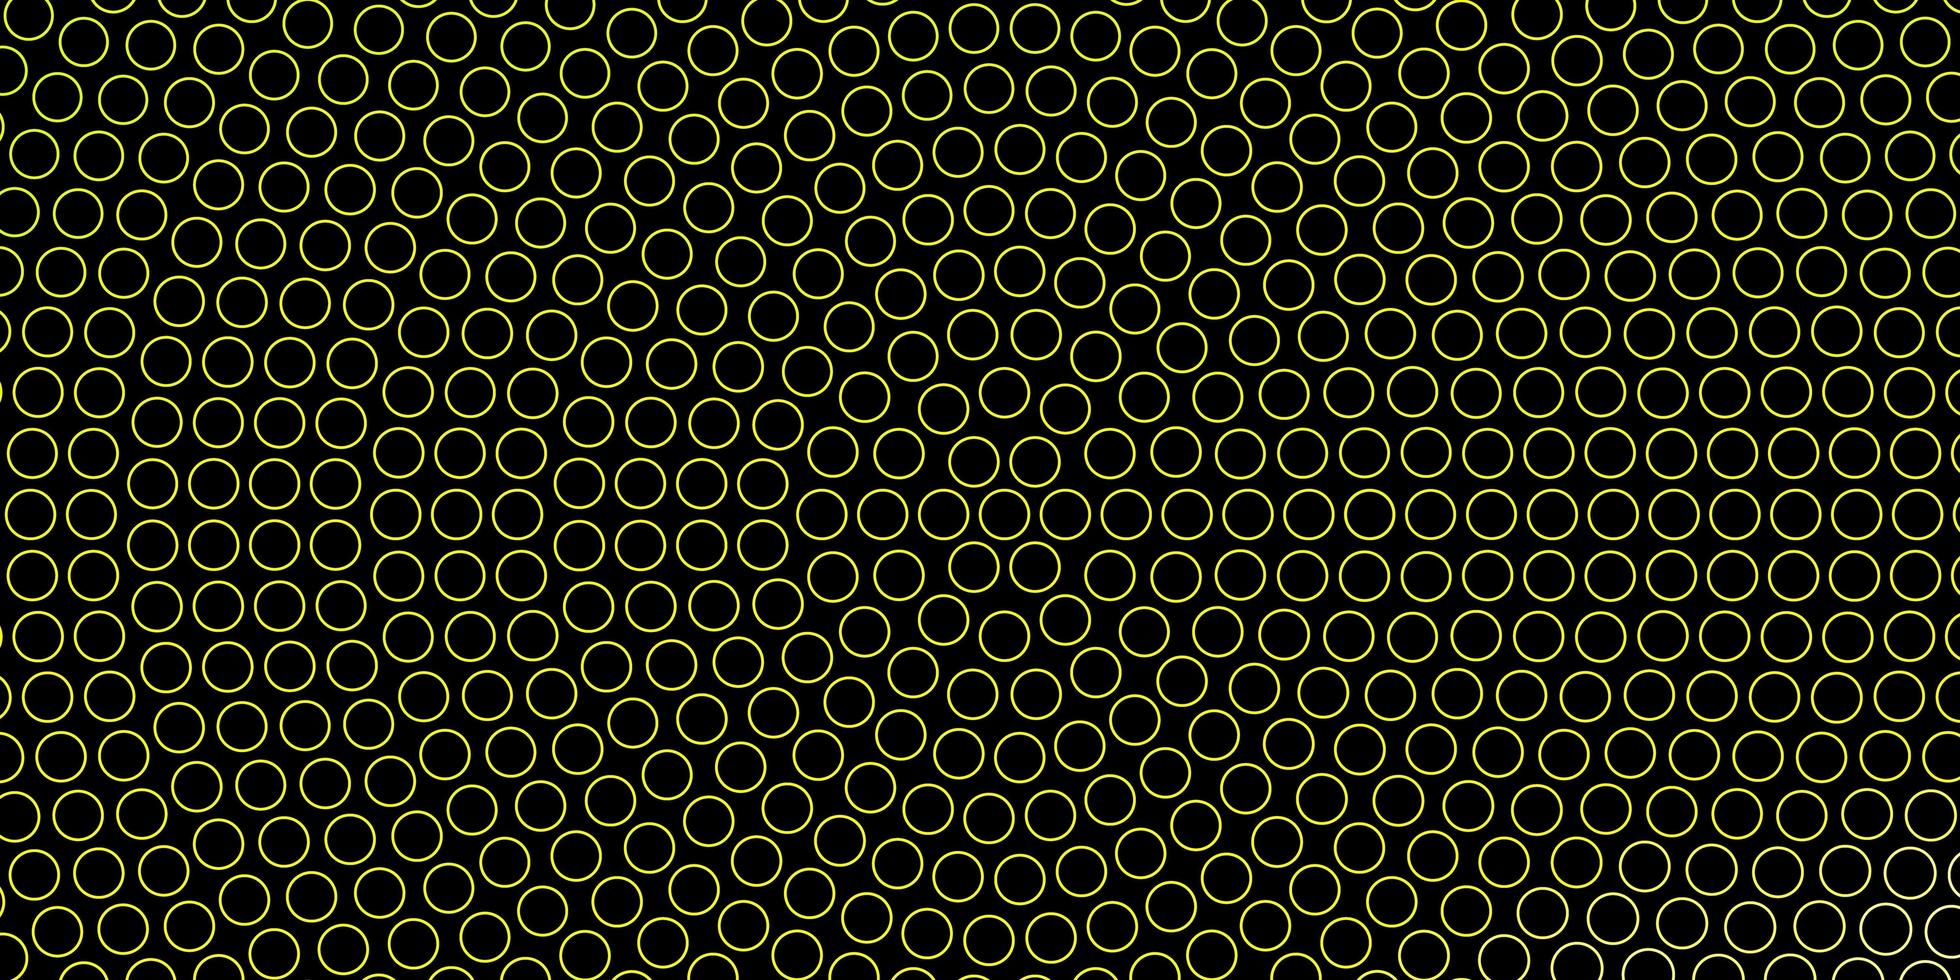 Dark Green background with circles. vector